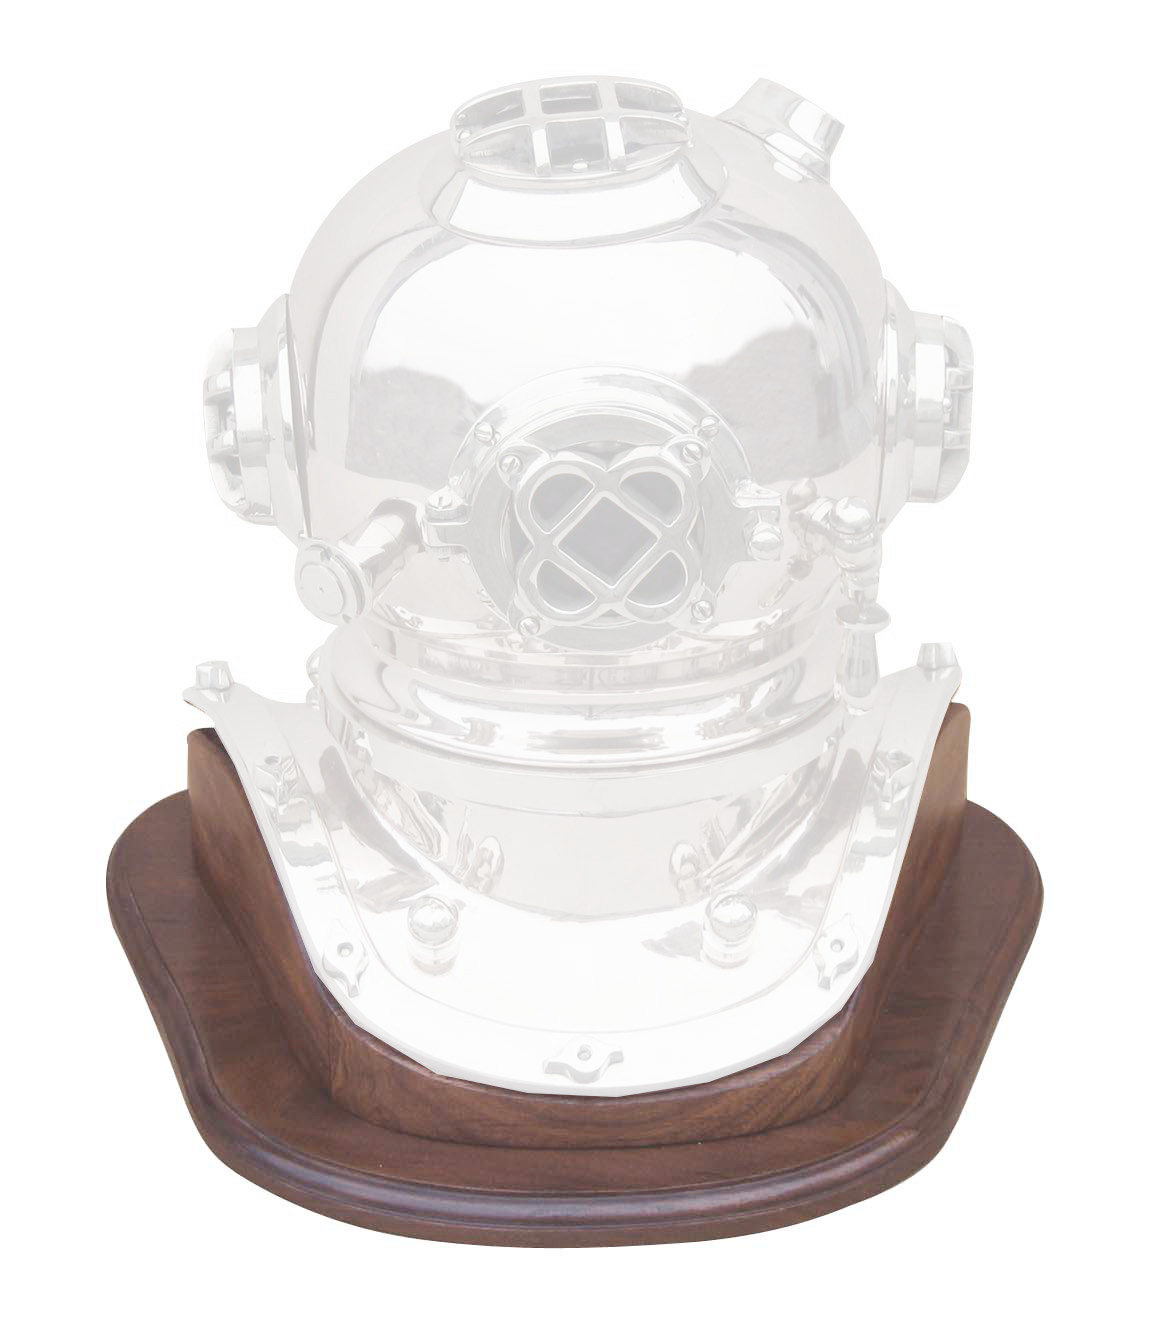 Wooden stand for helmet diver CA-1171 Reference - marine style - marine decoration